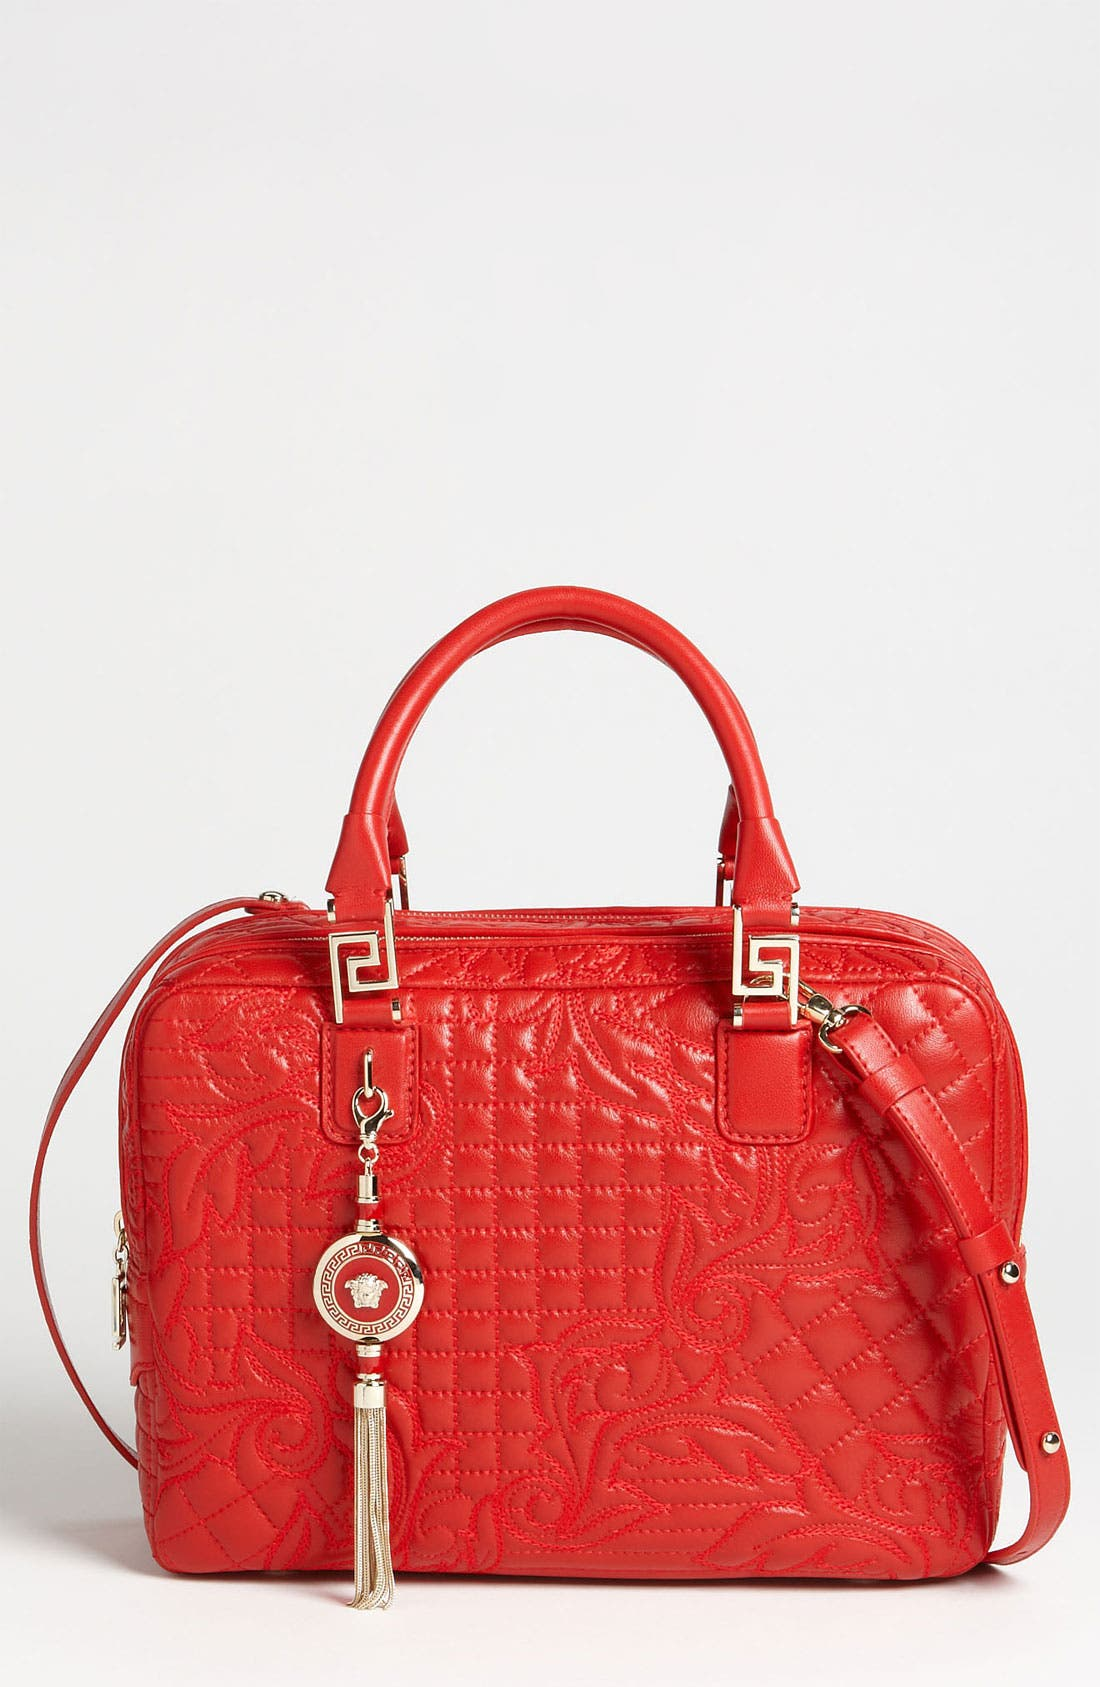 Alternate Image 1 Selected - Versace 'Linea' Leather Satchel